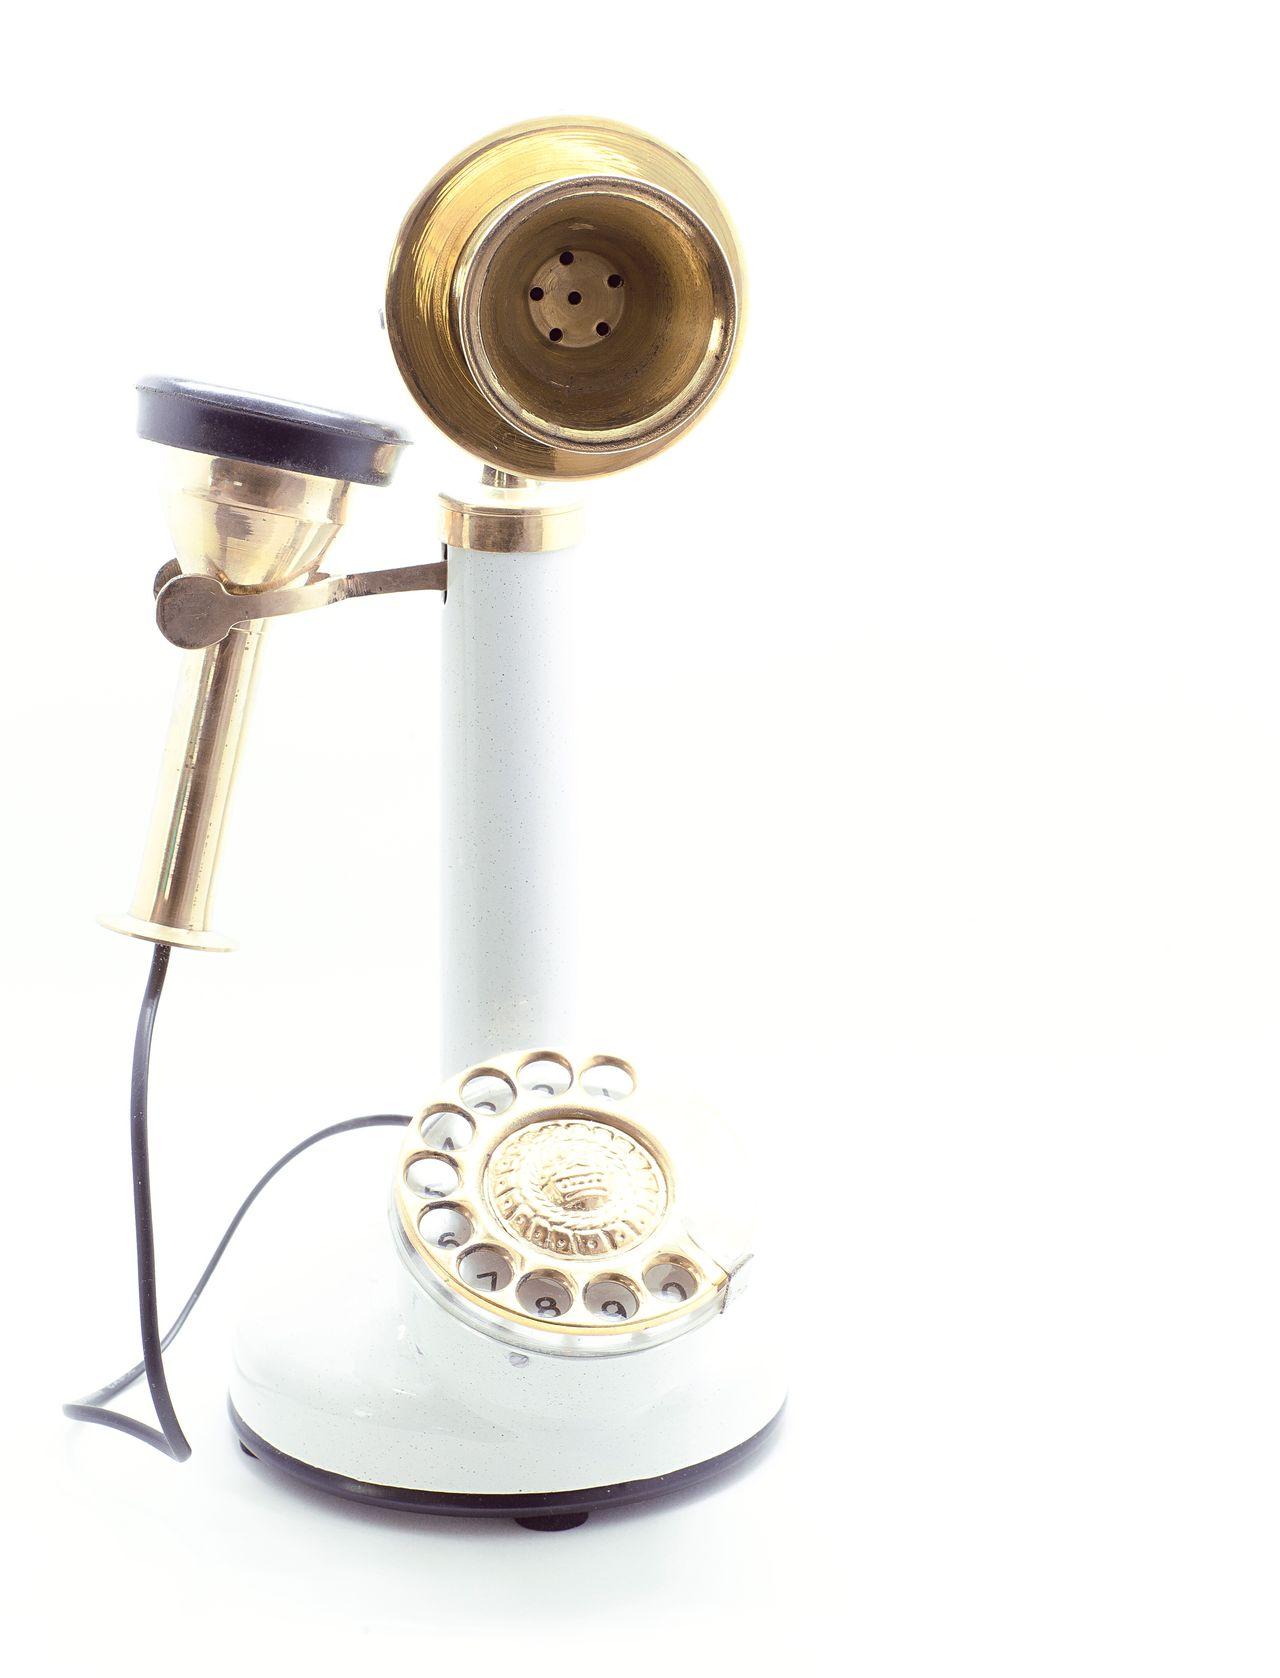 1900's Antique Brass candlesrick telephone 1900s Antique Brass Candlestick Telephone Oldest Machine Part White Background No People Old-fashioned Technology Close-up